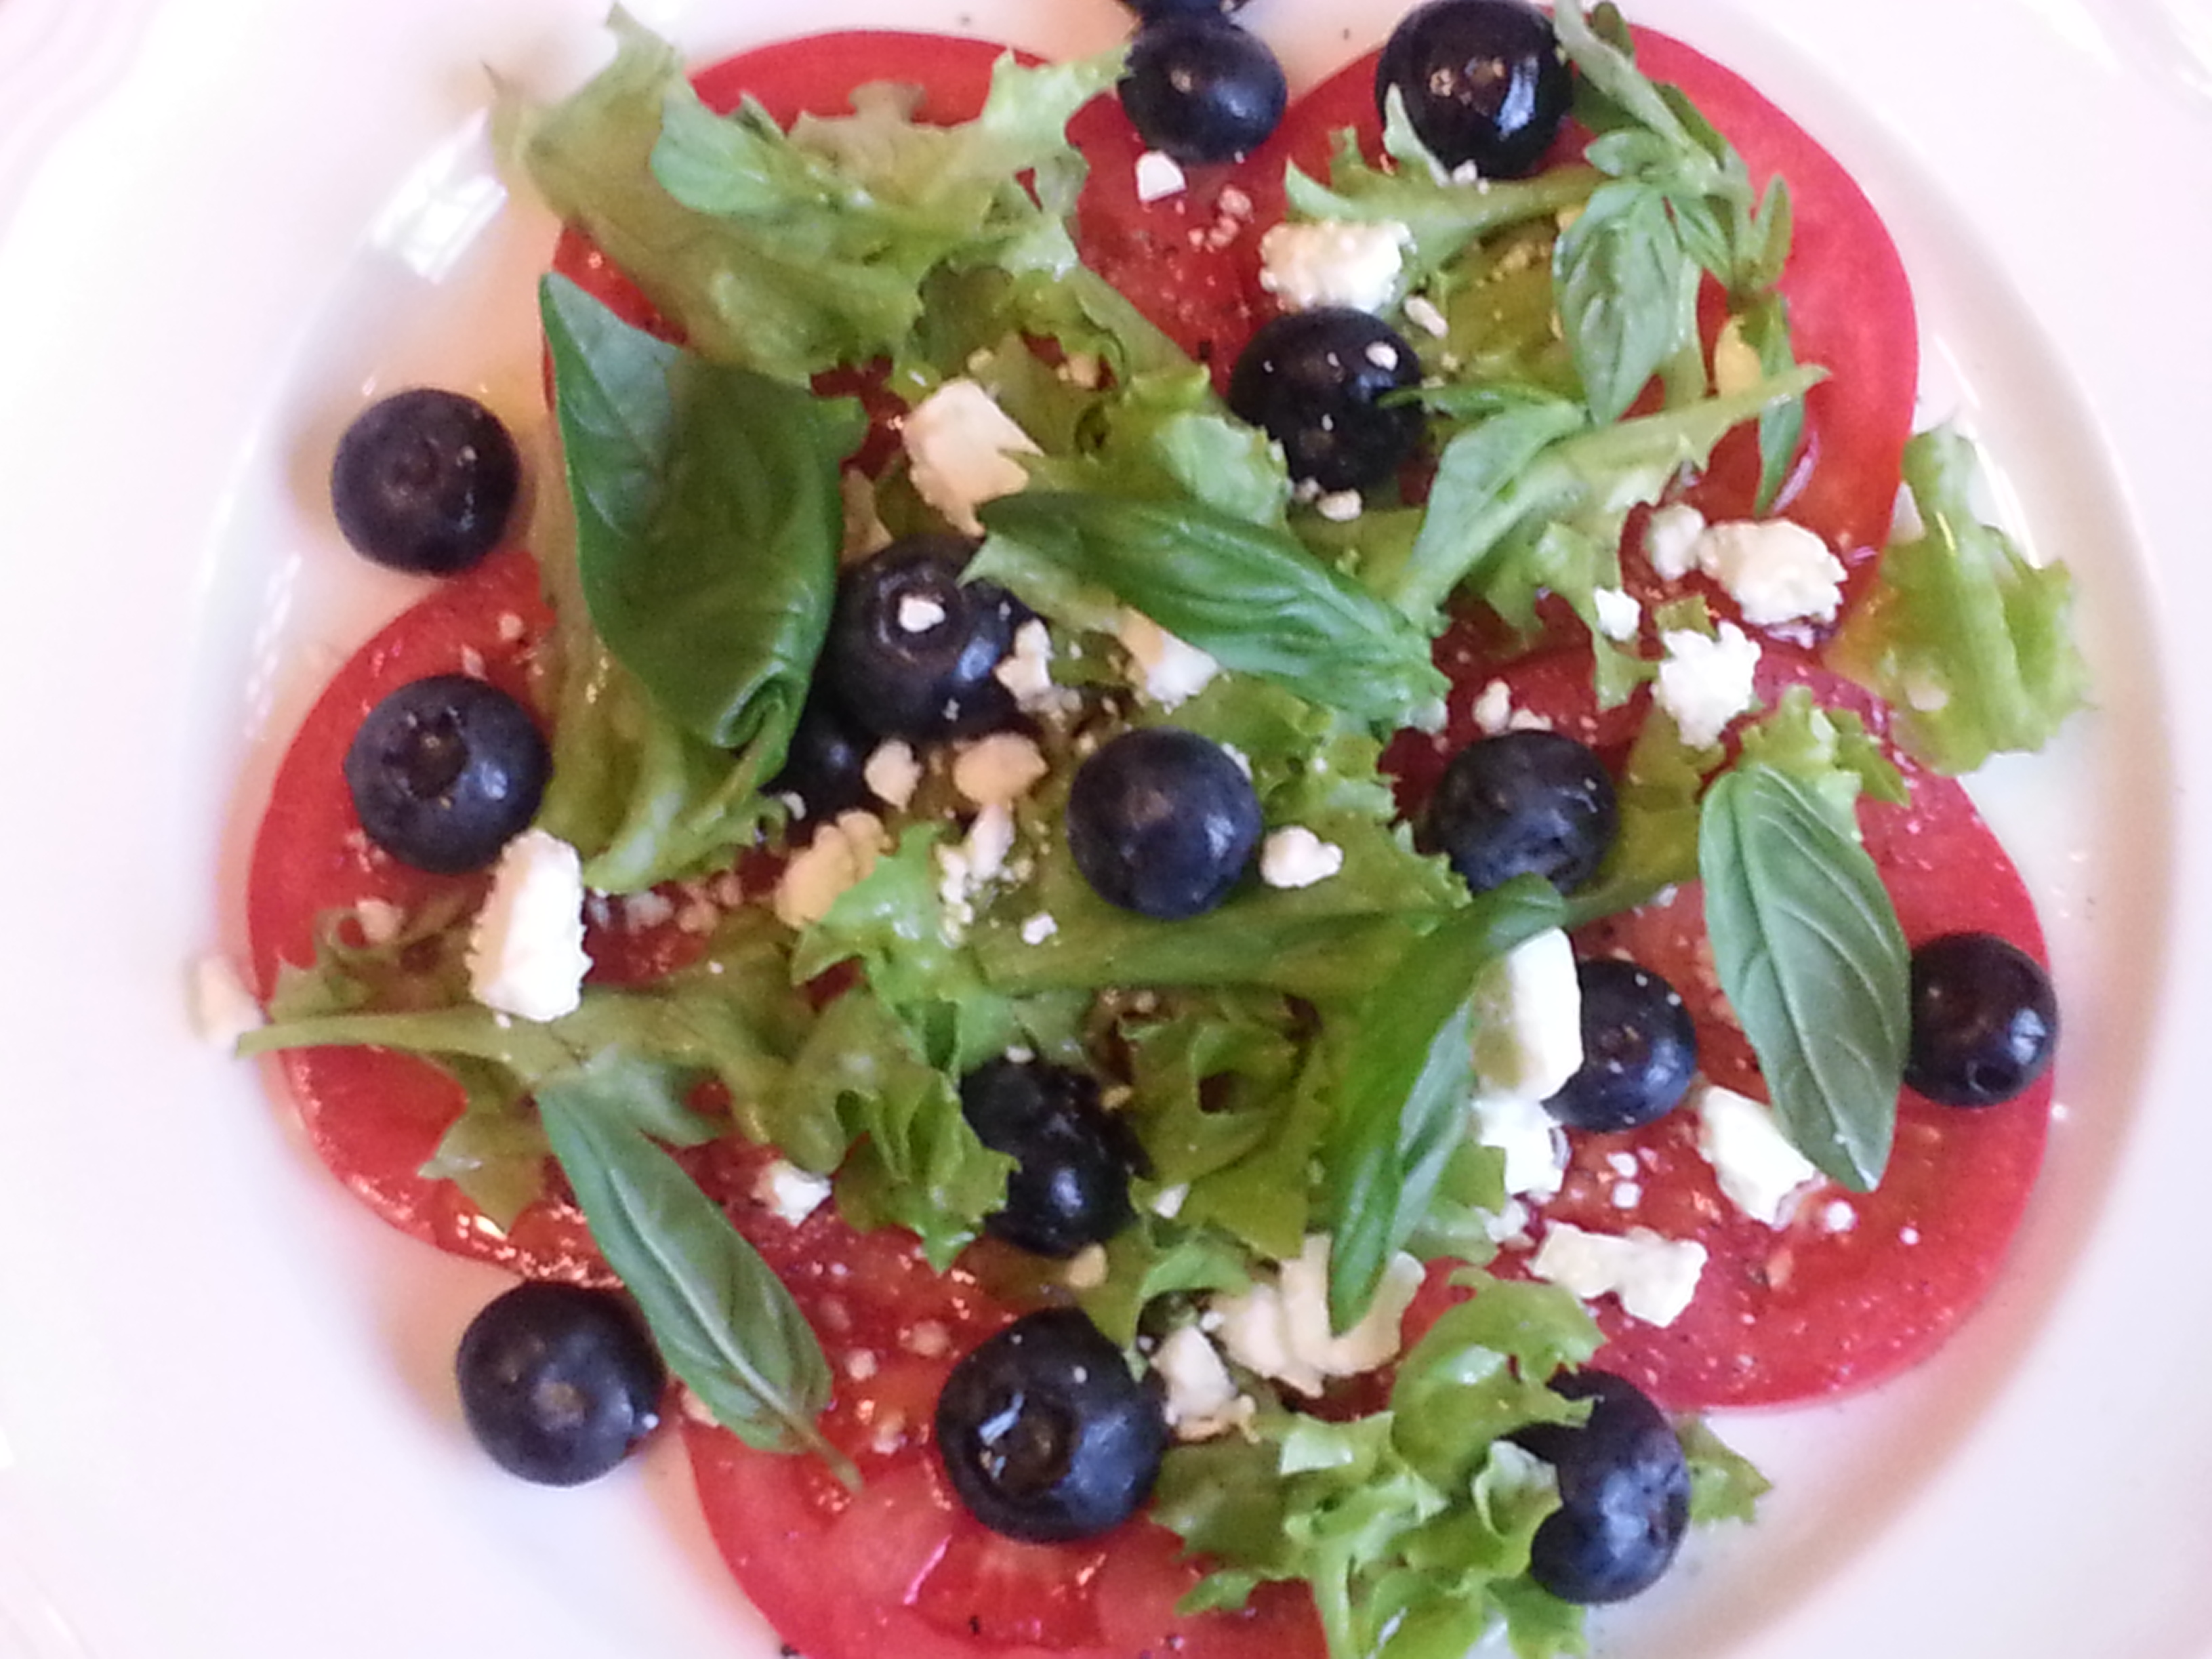 Tomato Blueberry Salad with Basil